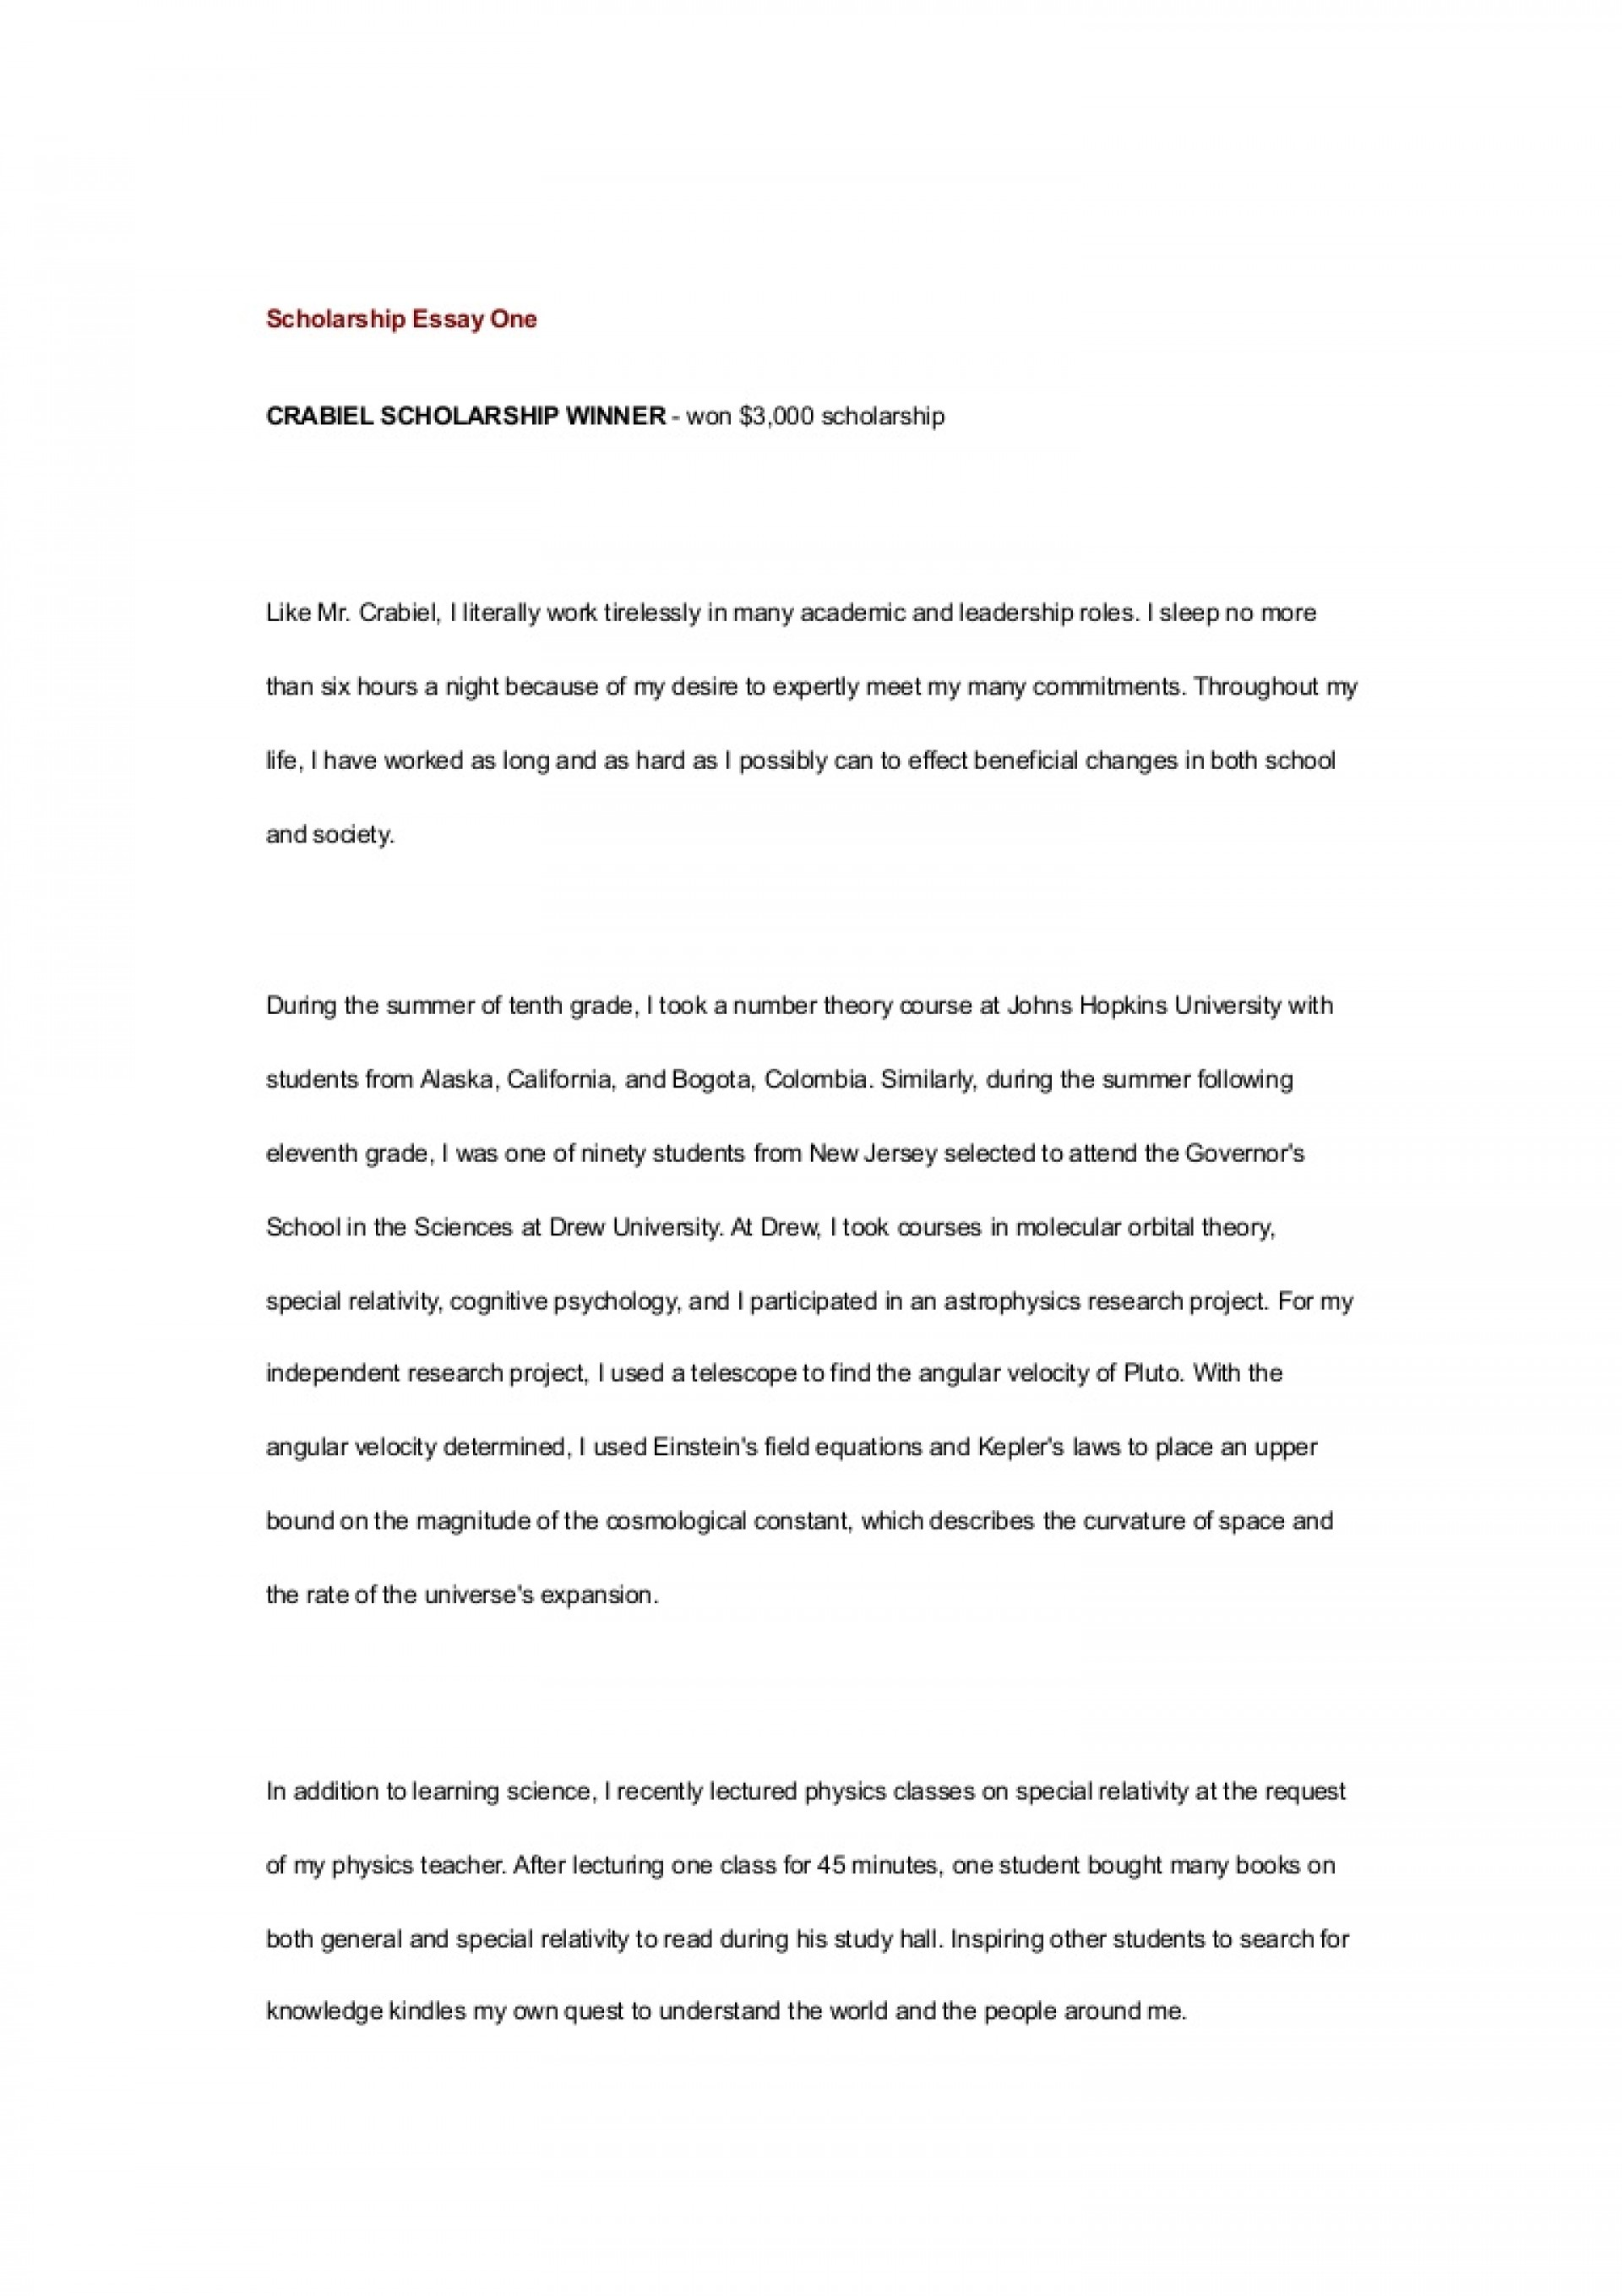 006 Sample Scholarship Essays Based Financial Need Scholarshipessayone Phpapp01 Thumbnail Essay Impressive Needs 1920